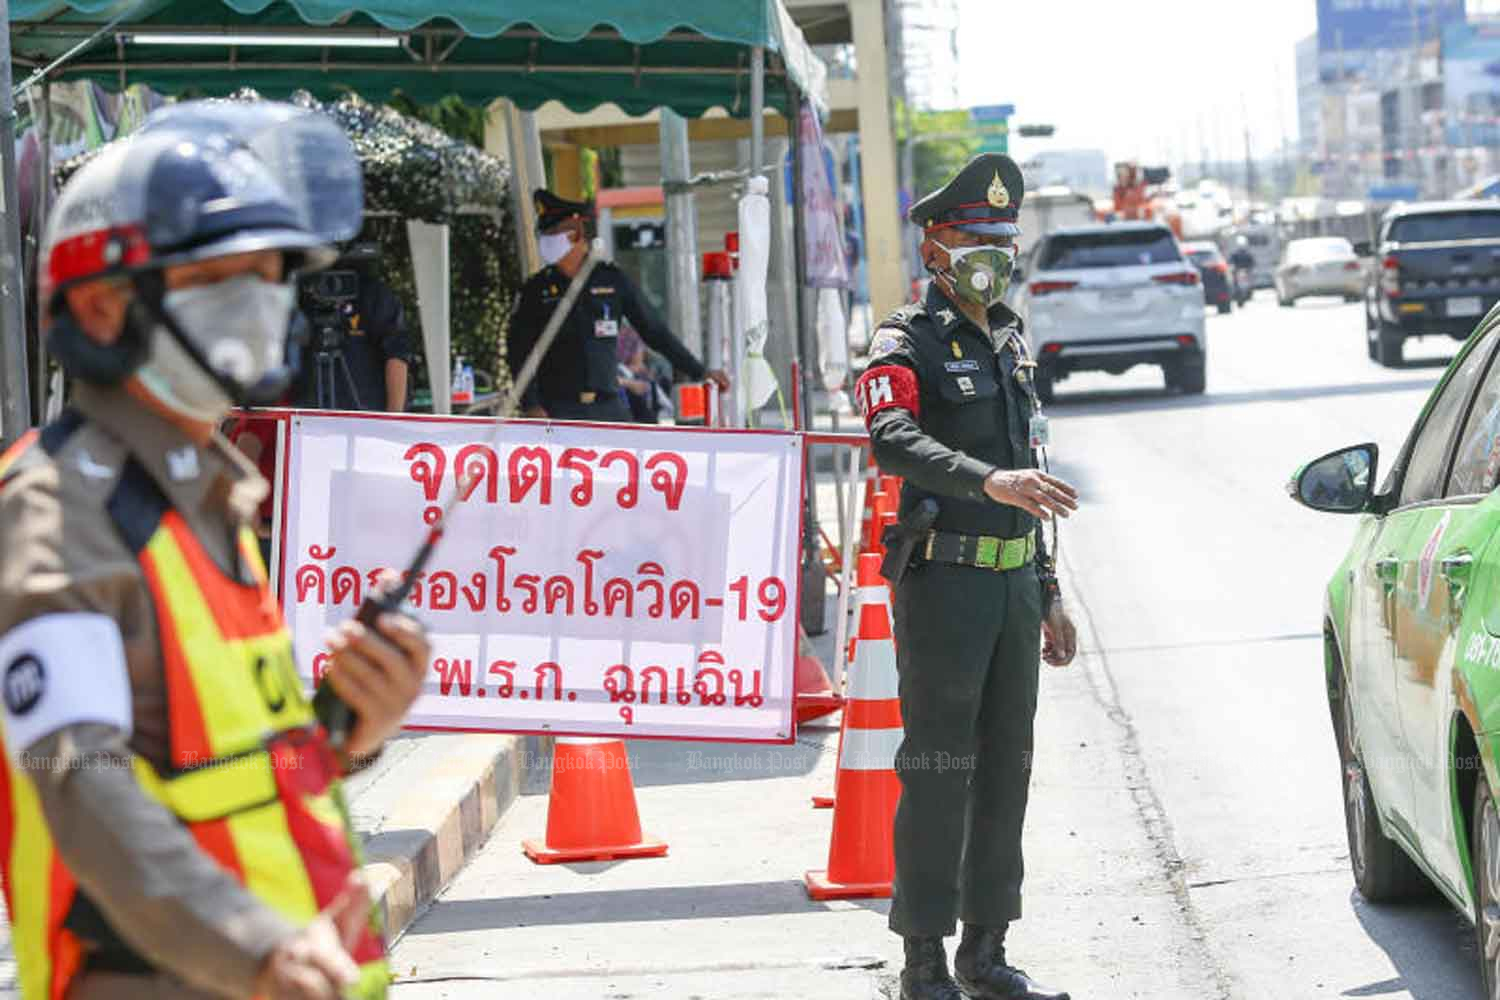 Covid-19-related checkpoints are expected to be removed, with the government likely to lift the night curfew soon. (Photo: Pattarapong Chatpattarasill)